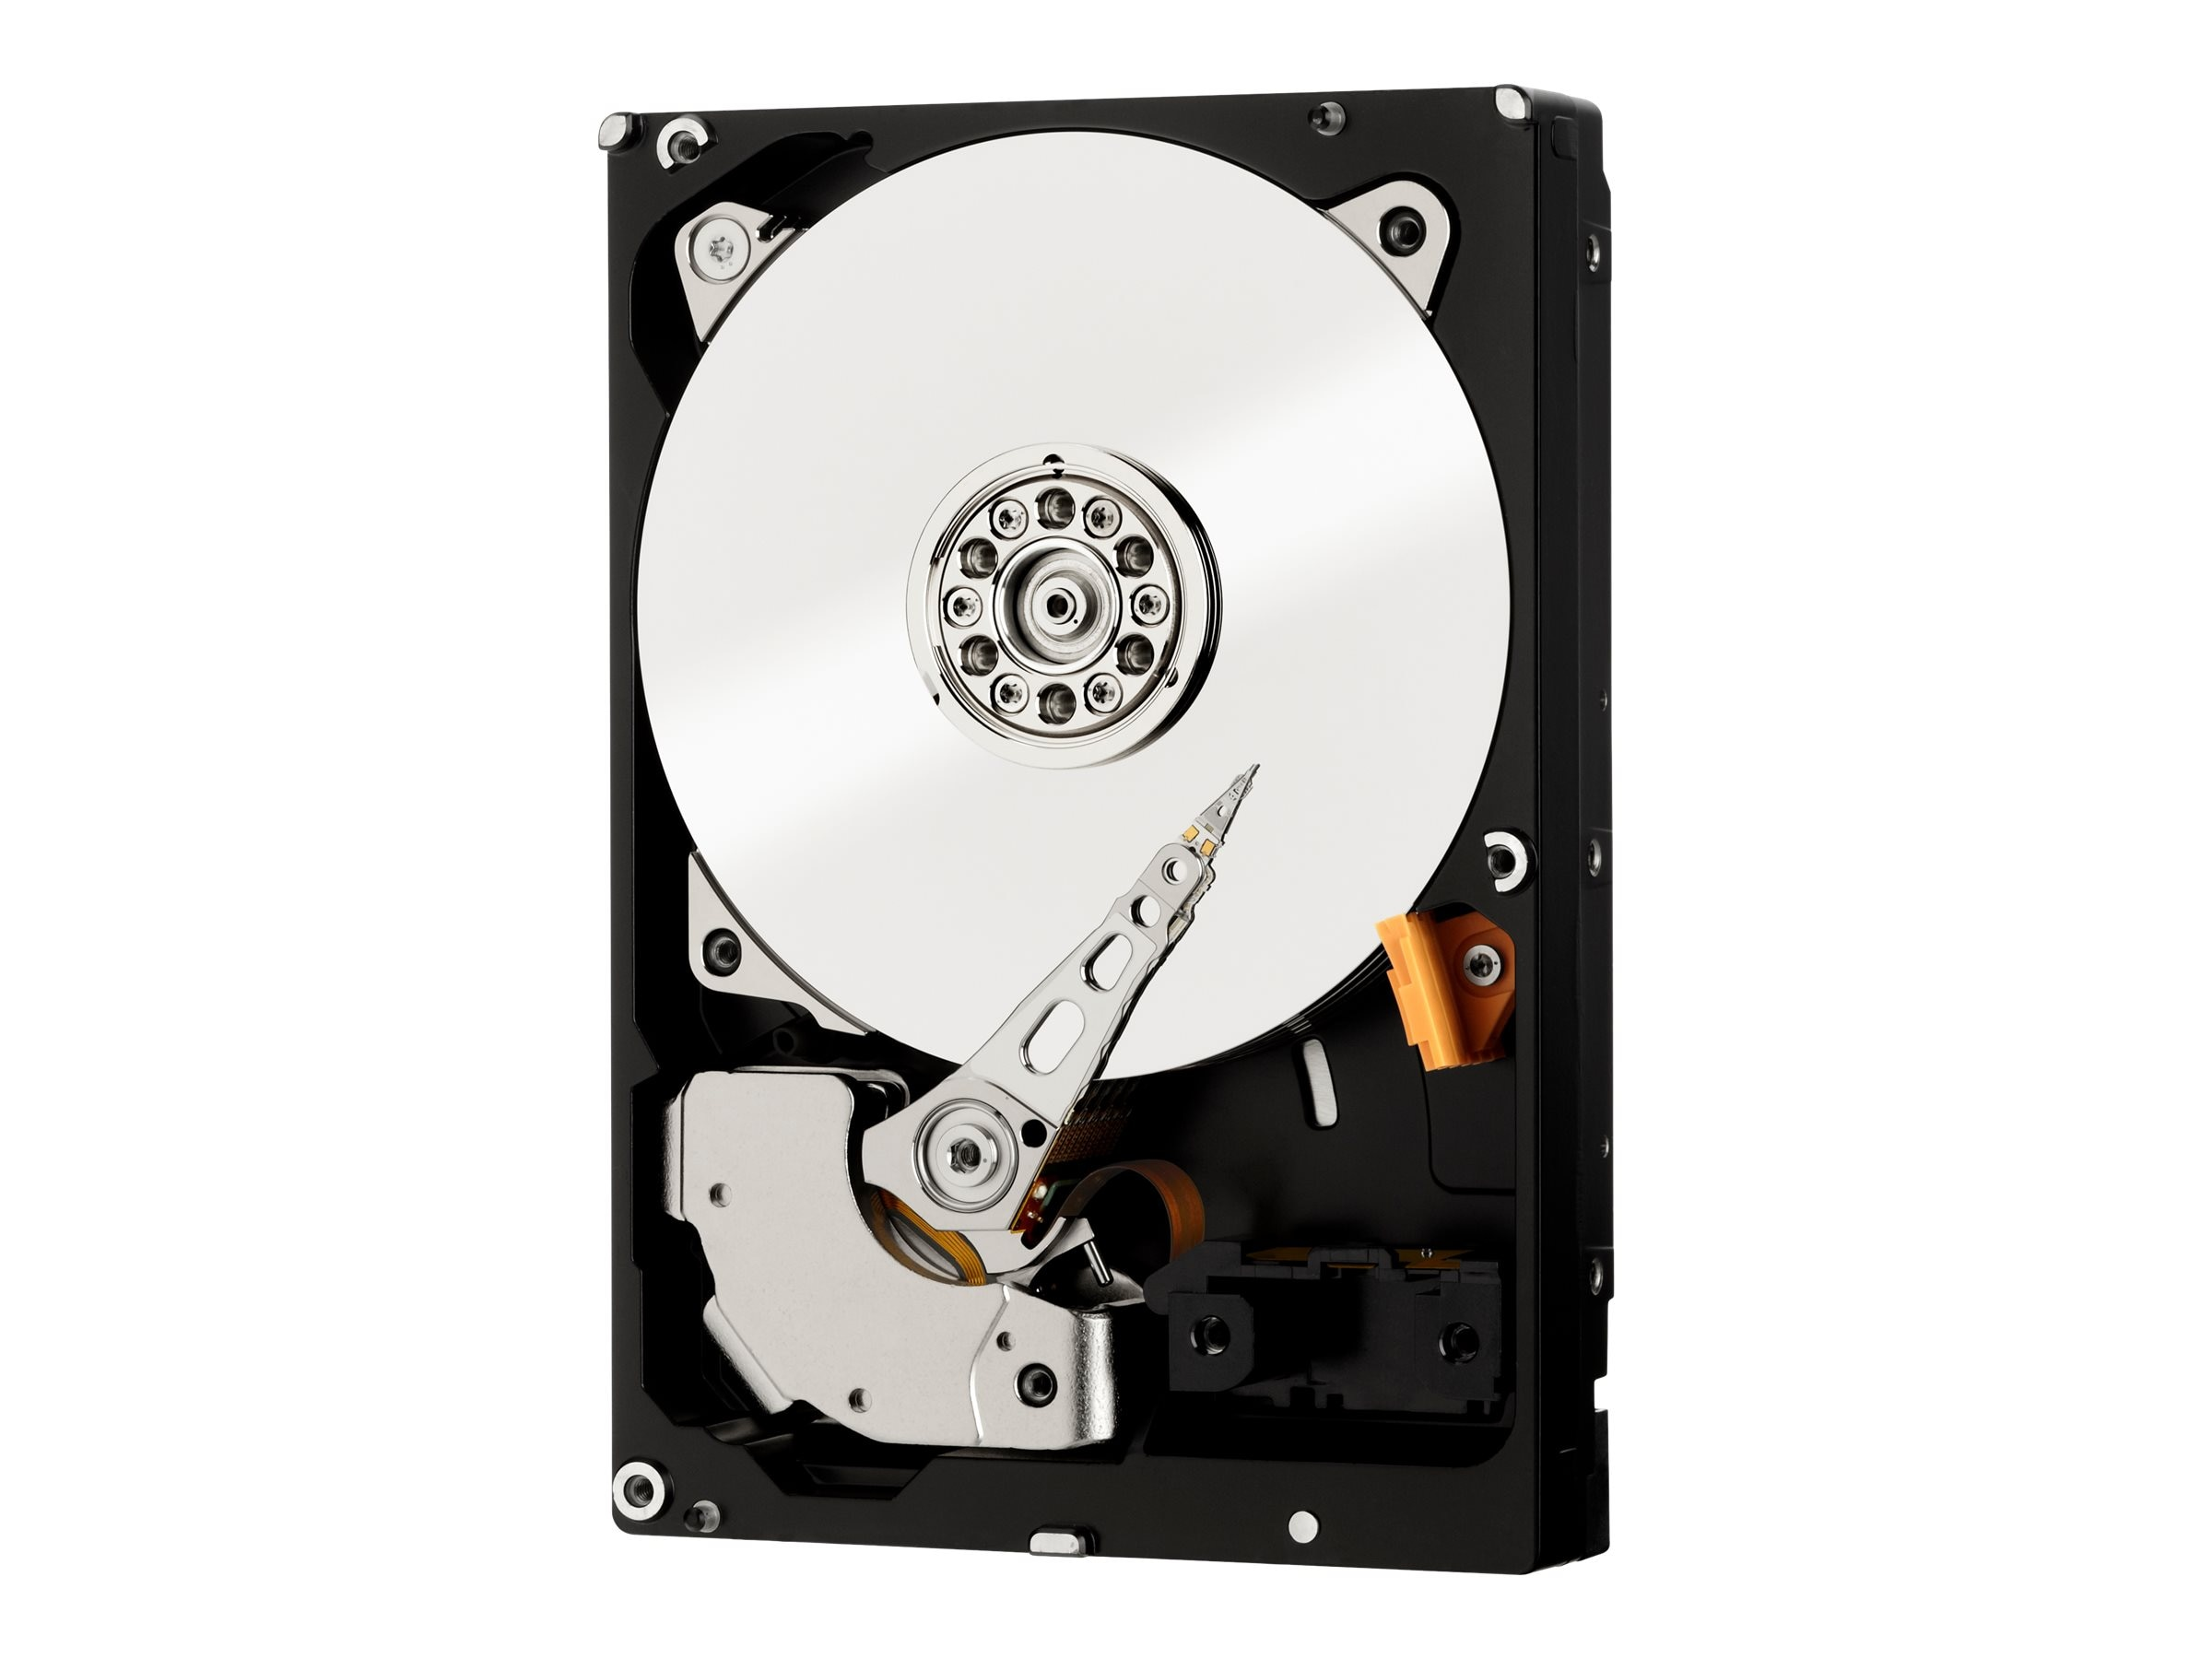 WD 5TB WD Re SATA 6Gb s 512e 3.5 Enterprise Hard Drive - 128MB Cache